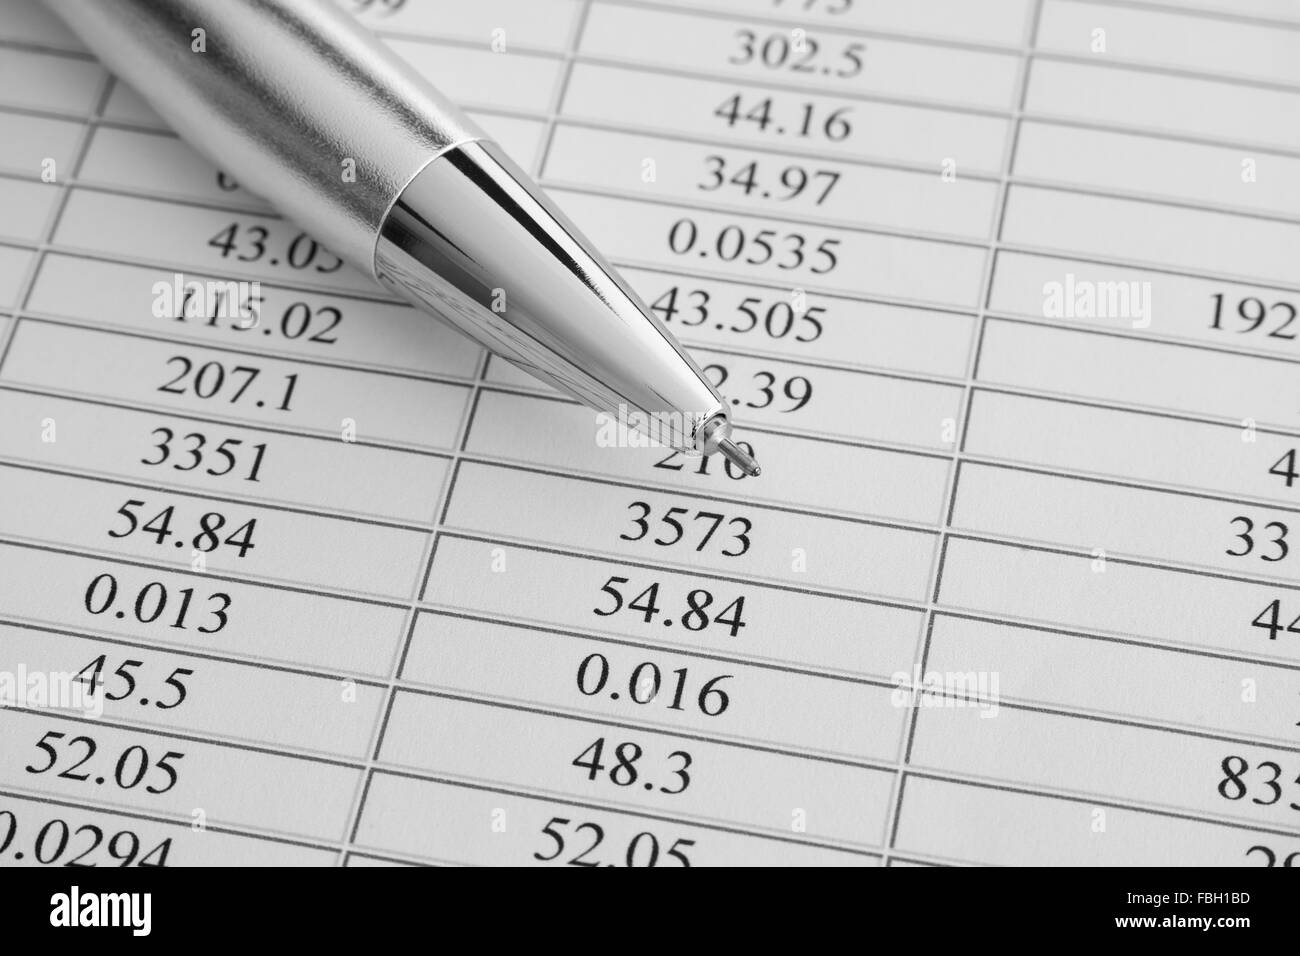 Financial statements. Ballpoint pen on financial statements. Black and white image. Close up. - Stock Image